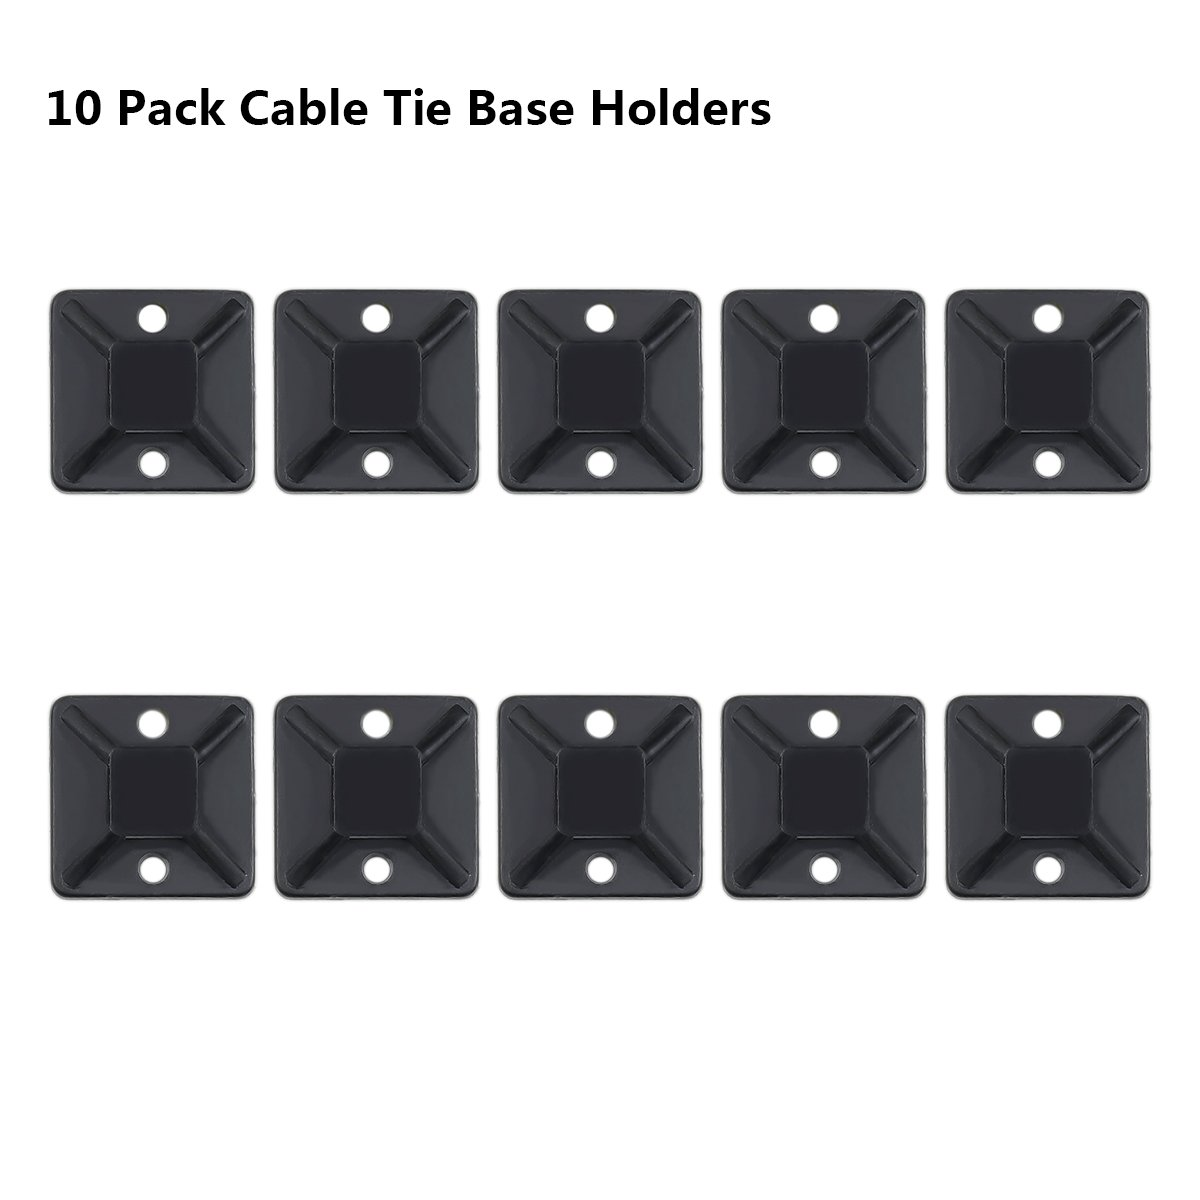 AMANEER Cable Zip Ties Black Flexible Nylon Wire Ties Ajustable Cable Cord Management For Electrical Accessories (500 Variety Pack) by AMANEER (Image #3)